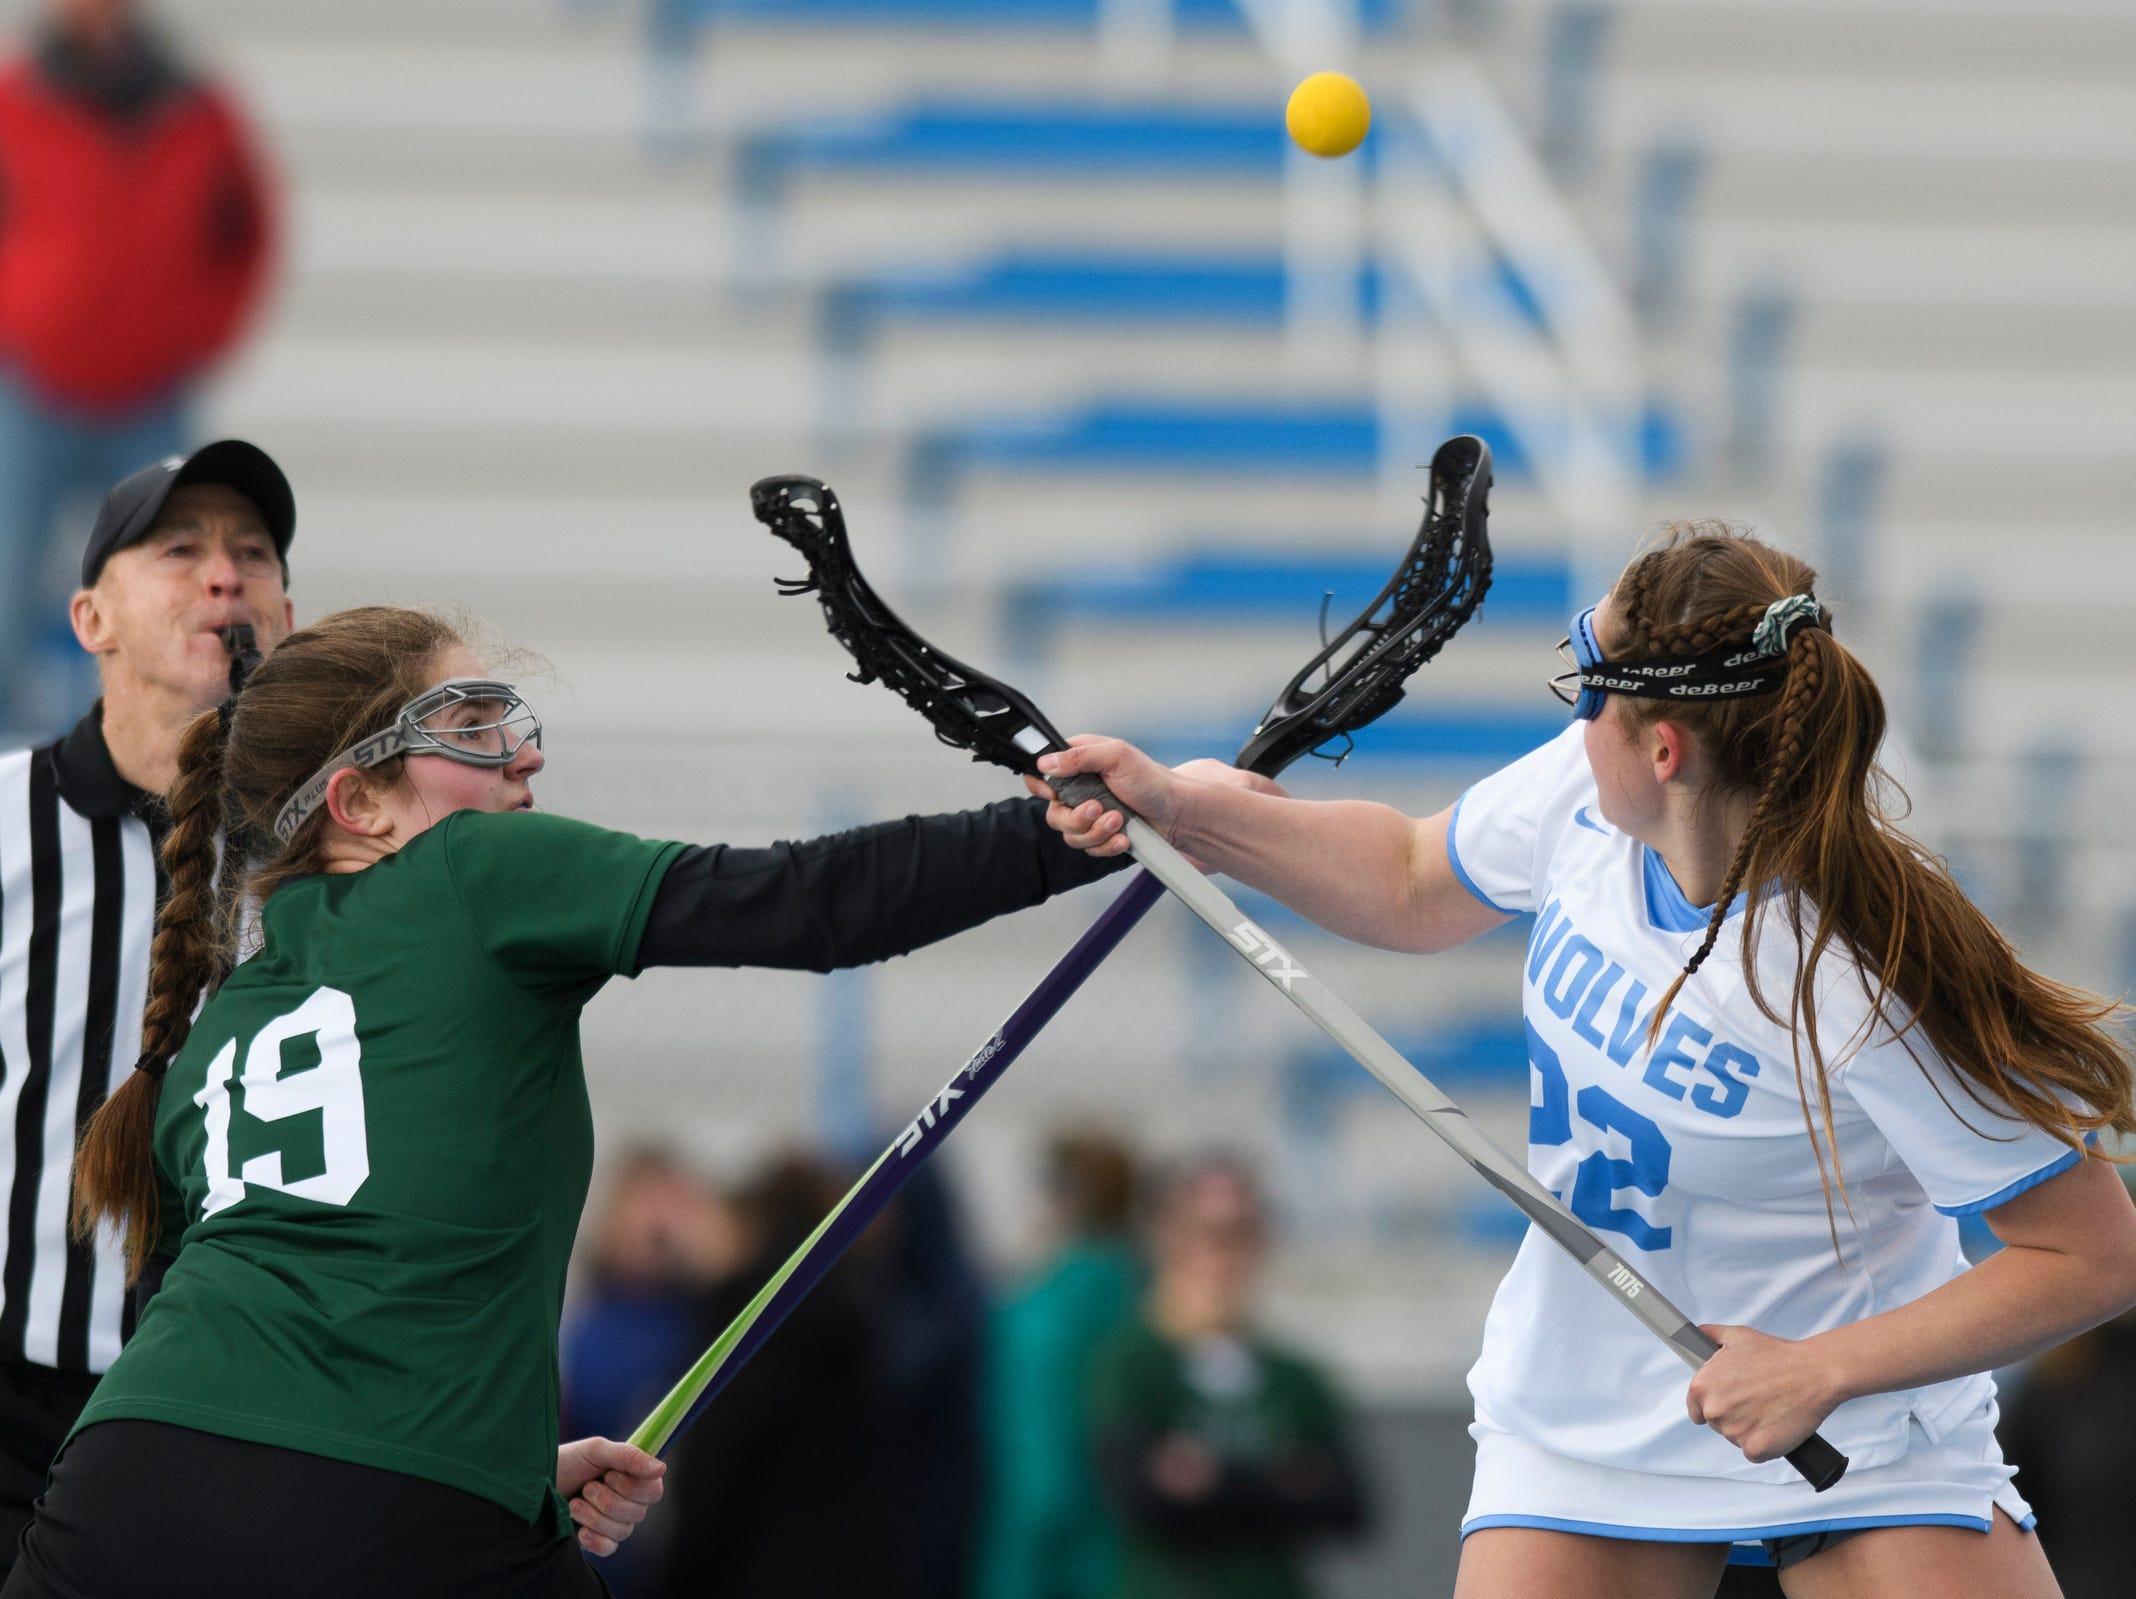 Rice's Sarah Holmes (19) and South Burlington's Sabrina Redzic (22) battle for the tip off during the girls lacrosse game between the Rice Green Knights and the South Burlington Wolves at South Burlington High School on Tuesday afternoon April 16, 2019 in South Burlington, Vermont.